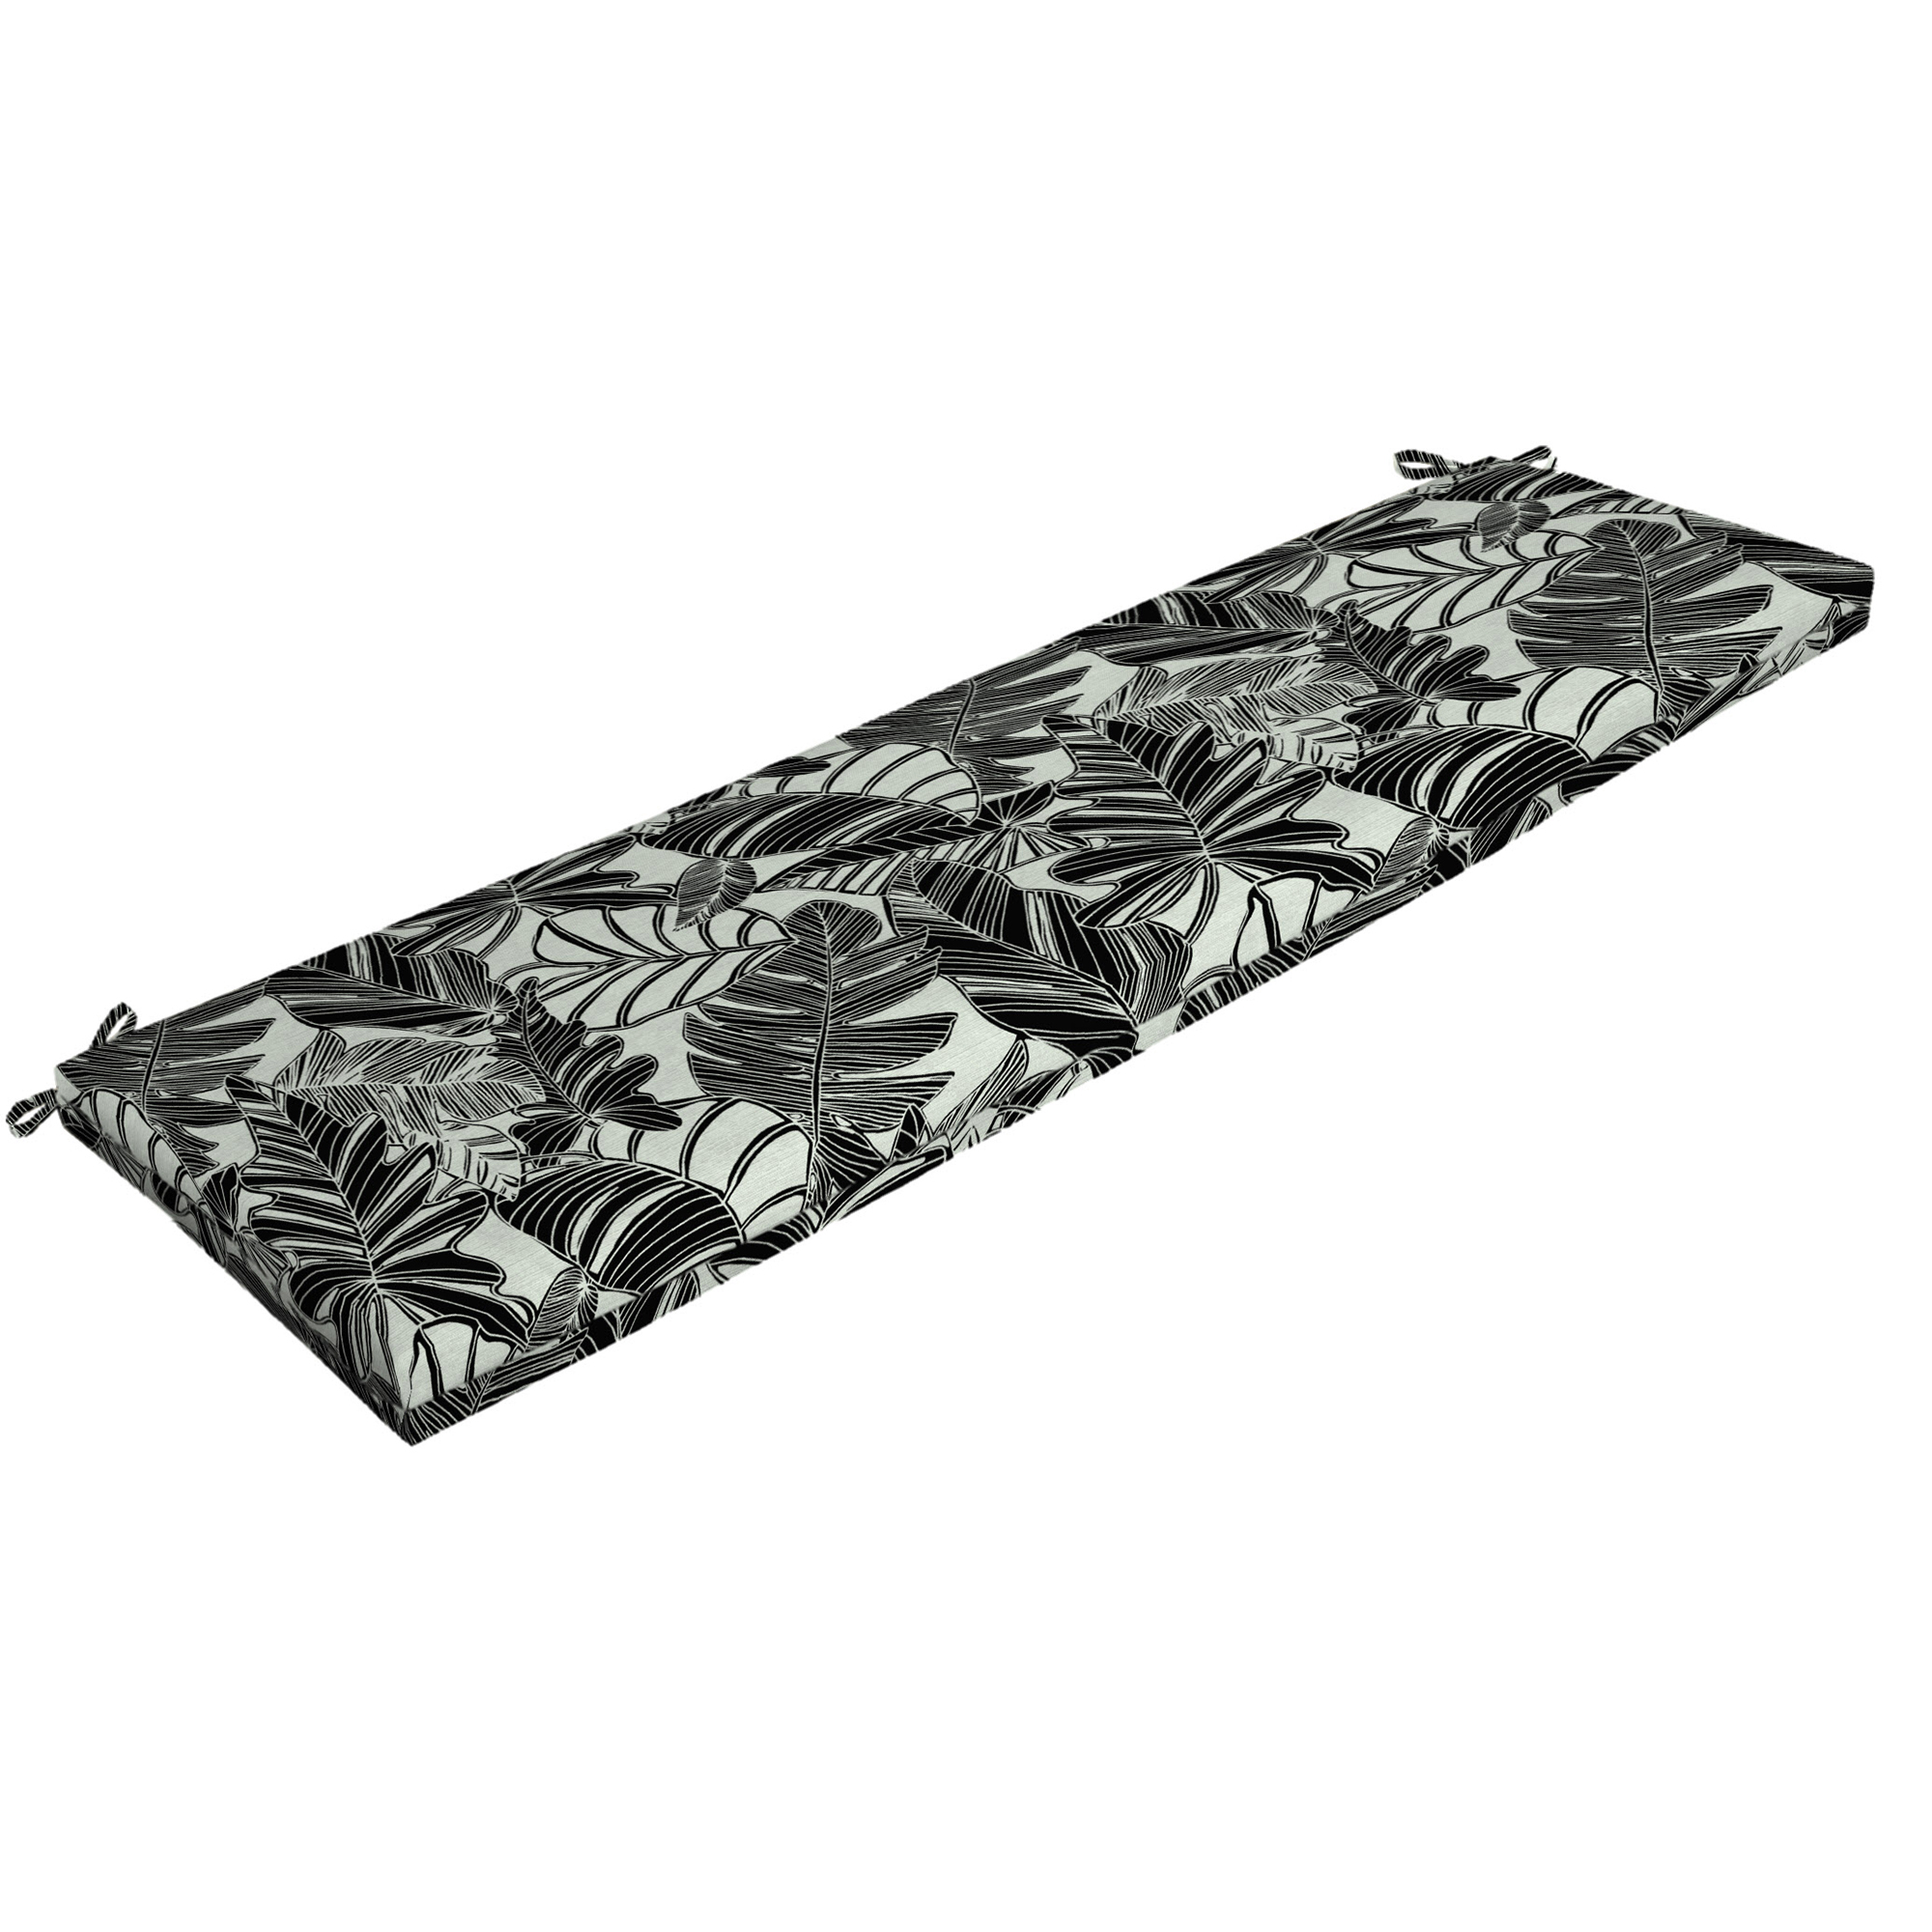 Mainstays Black and White Tropical 17 x 46 in. Outdoor Bench Cushion